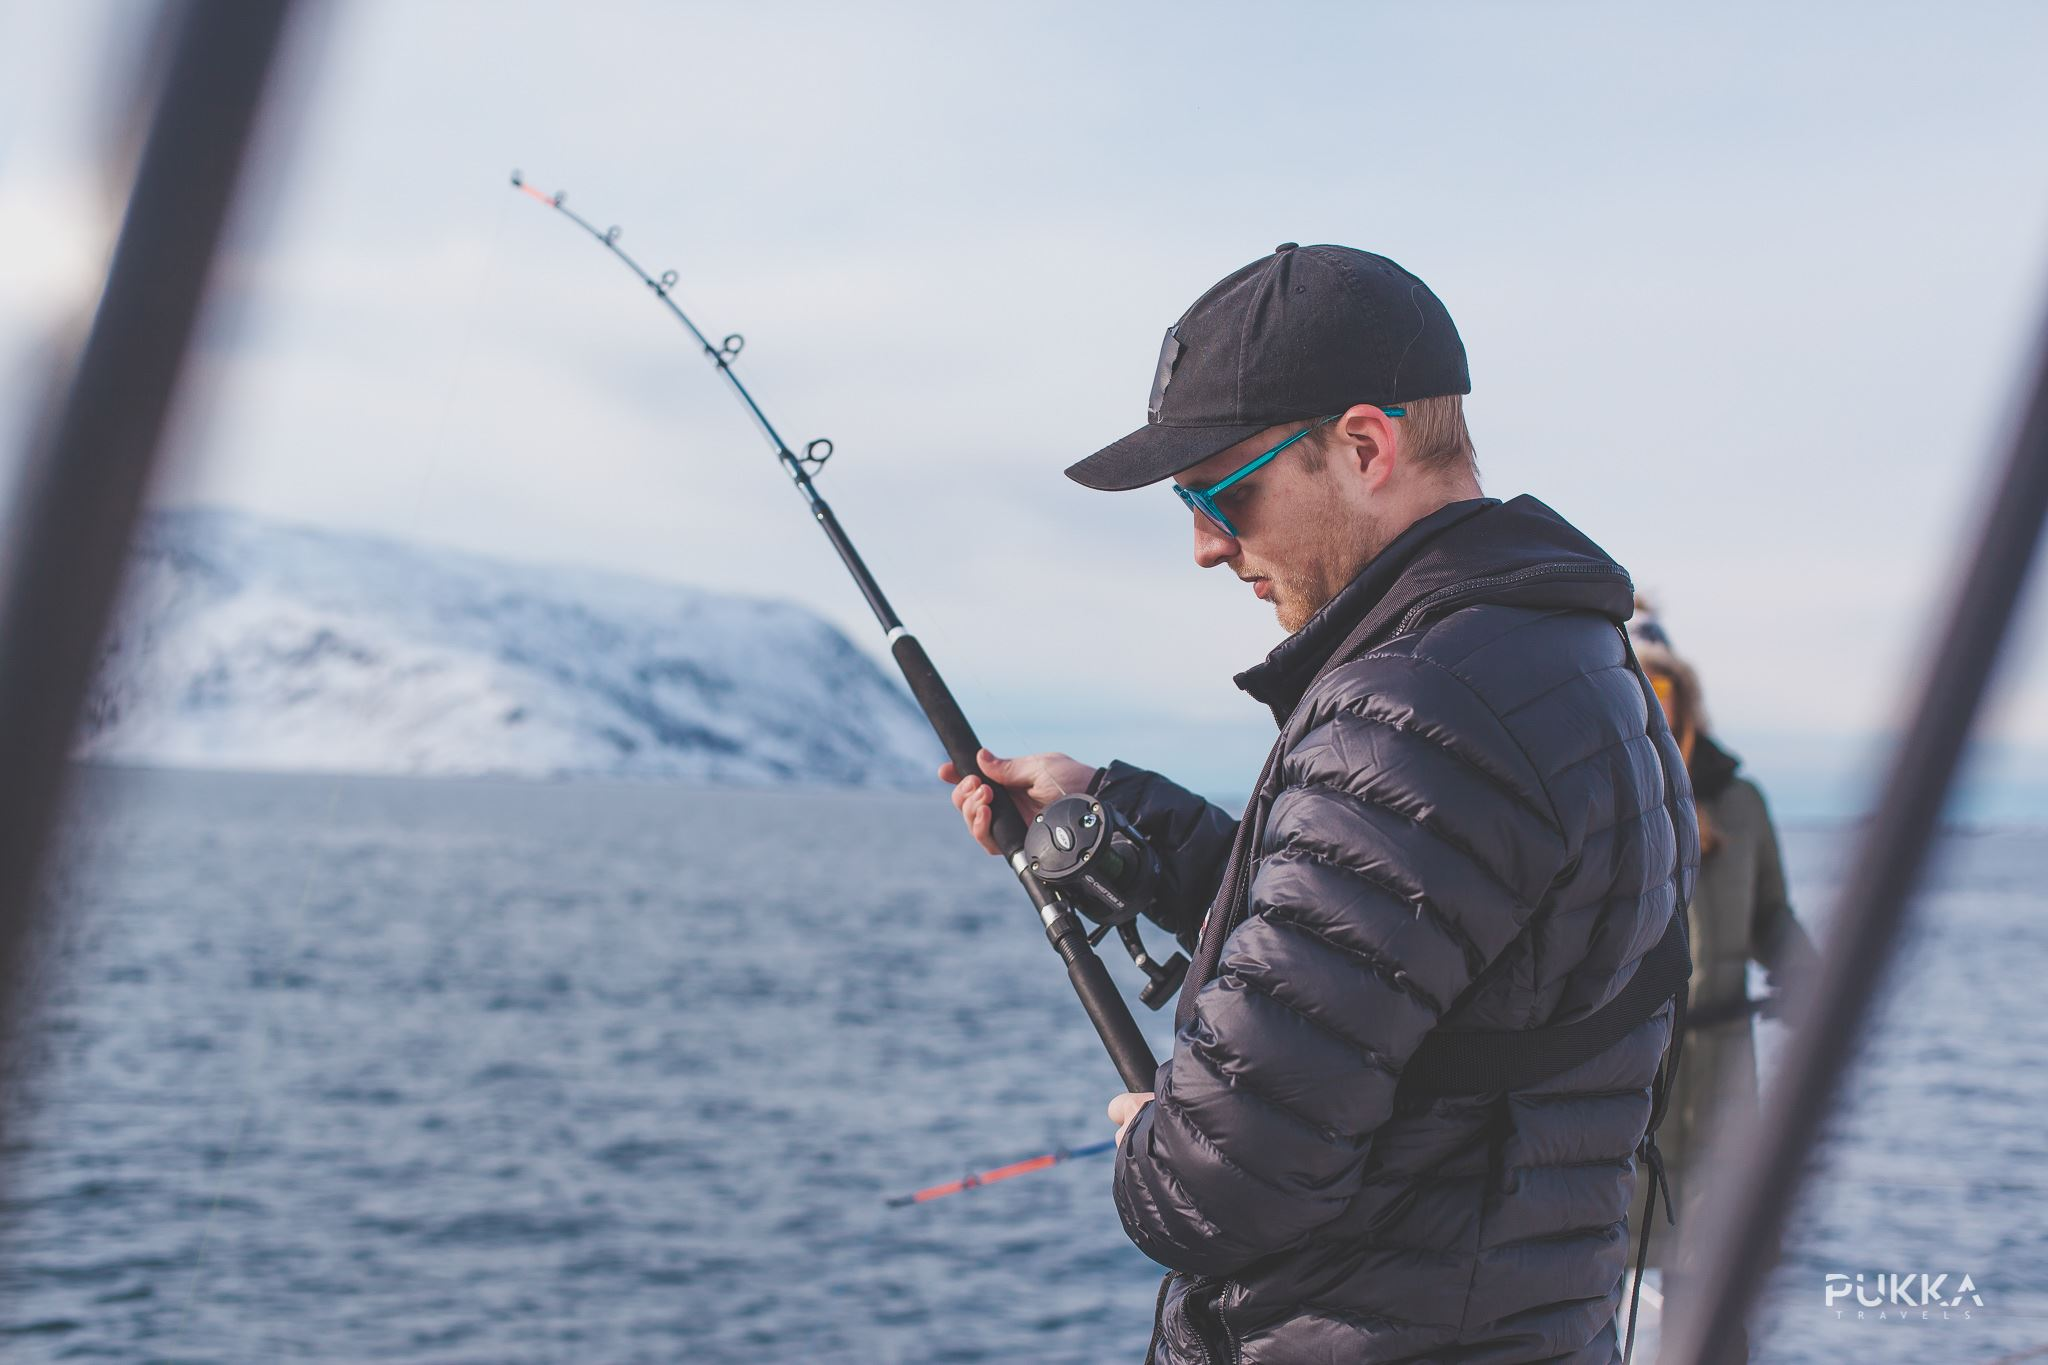 © Pukka Travels, Man fishing, snowy mountains in the background